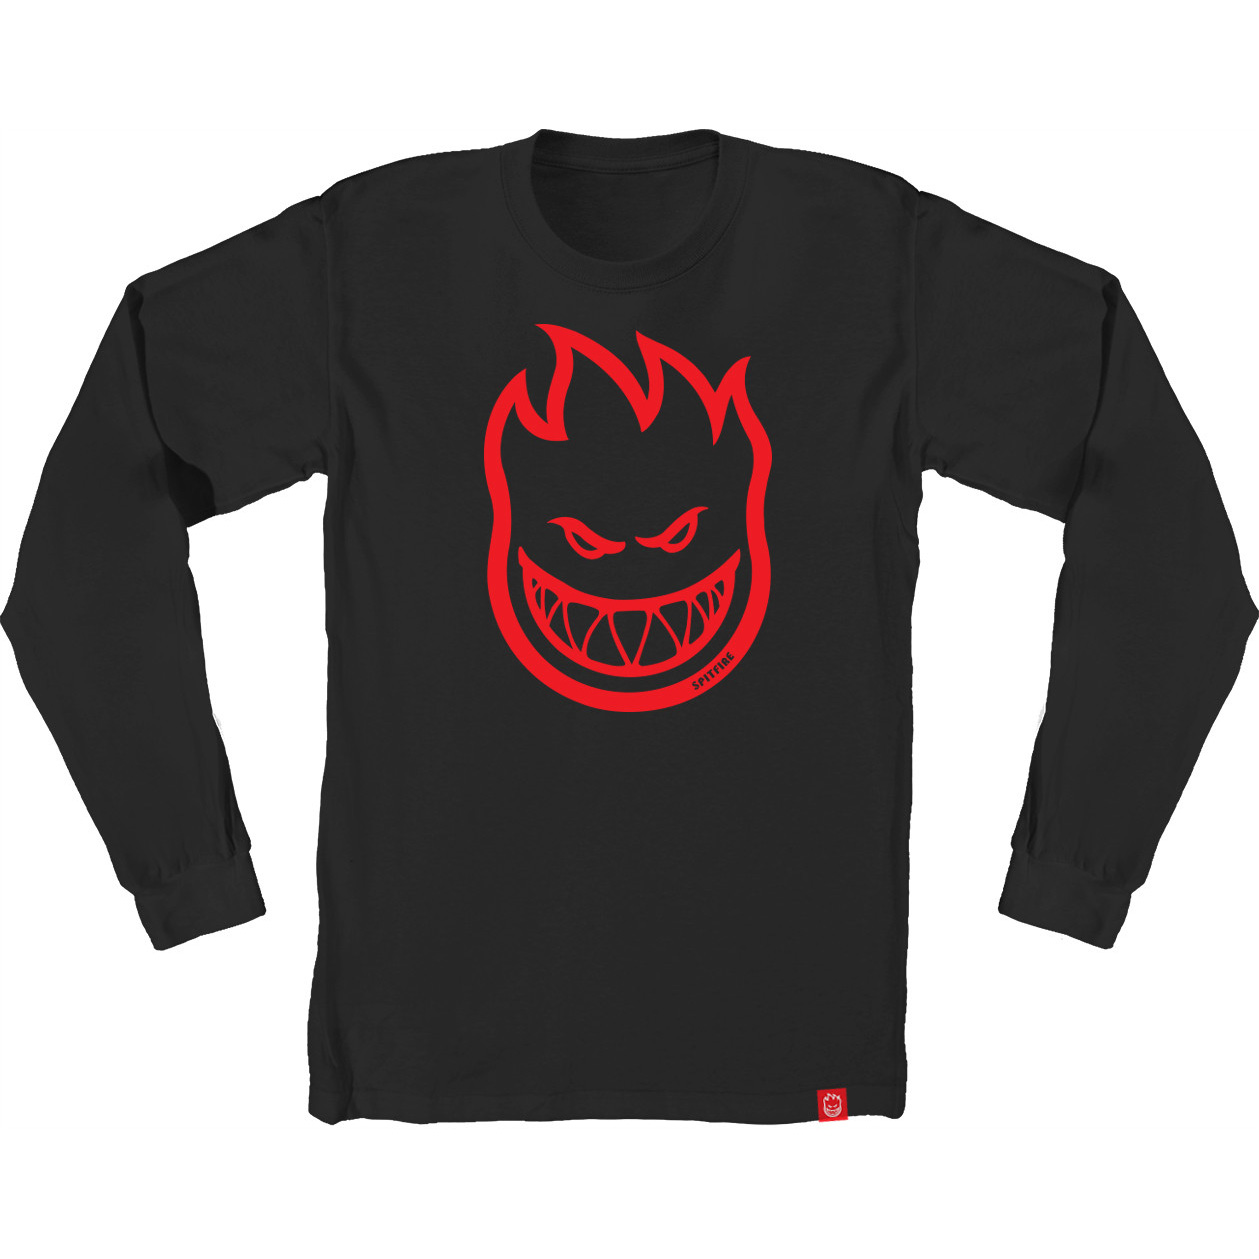 SF LS TEE BIGHEAD BLK/RED XL - Click to enlarge